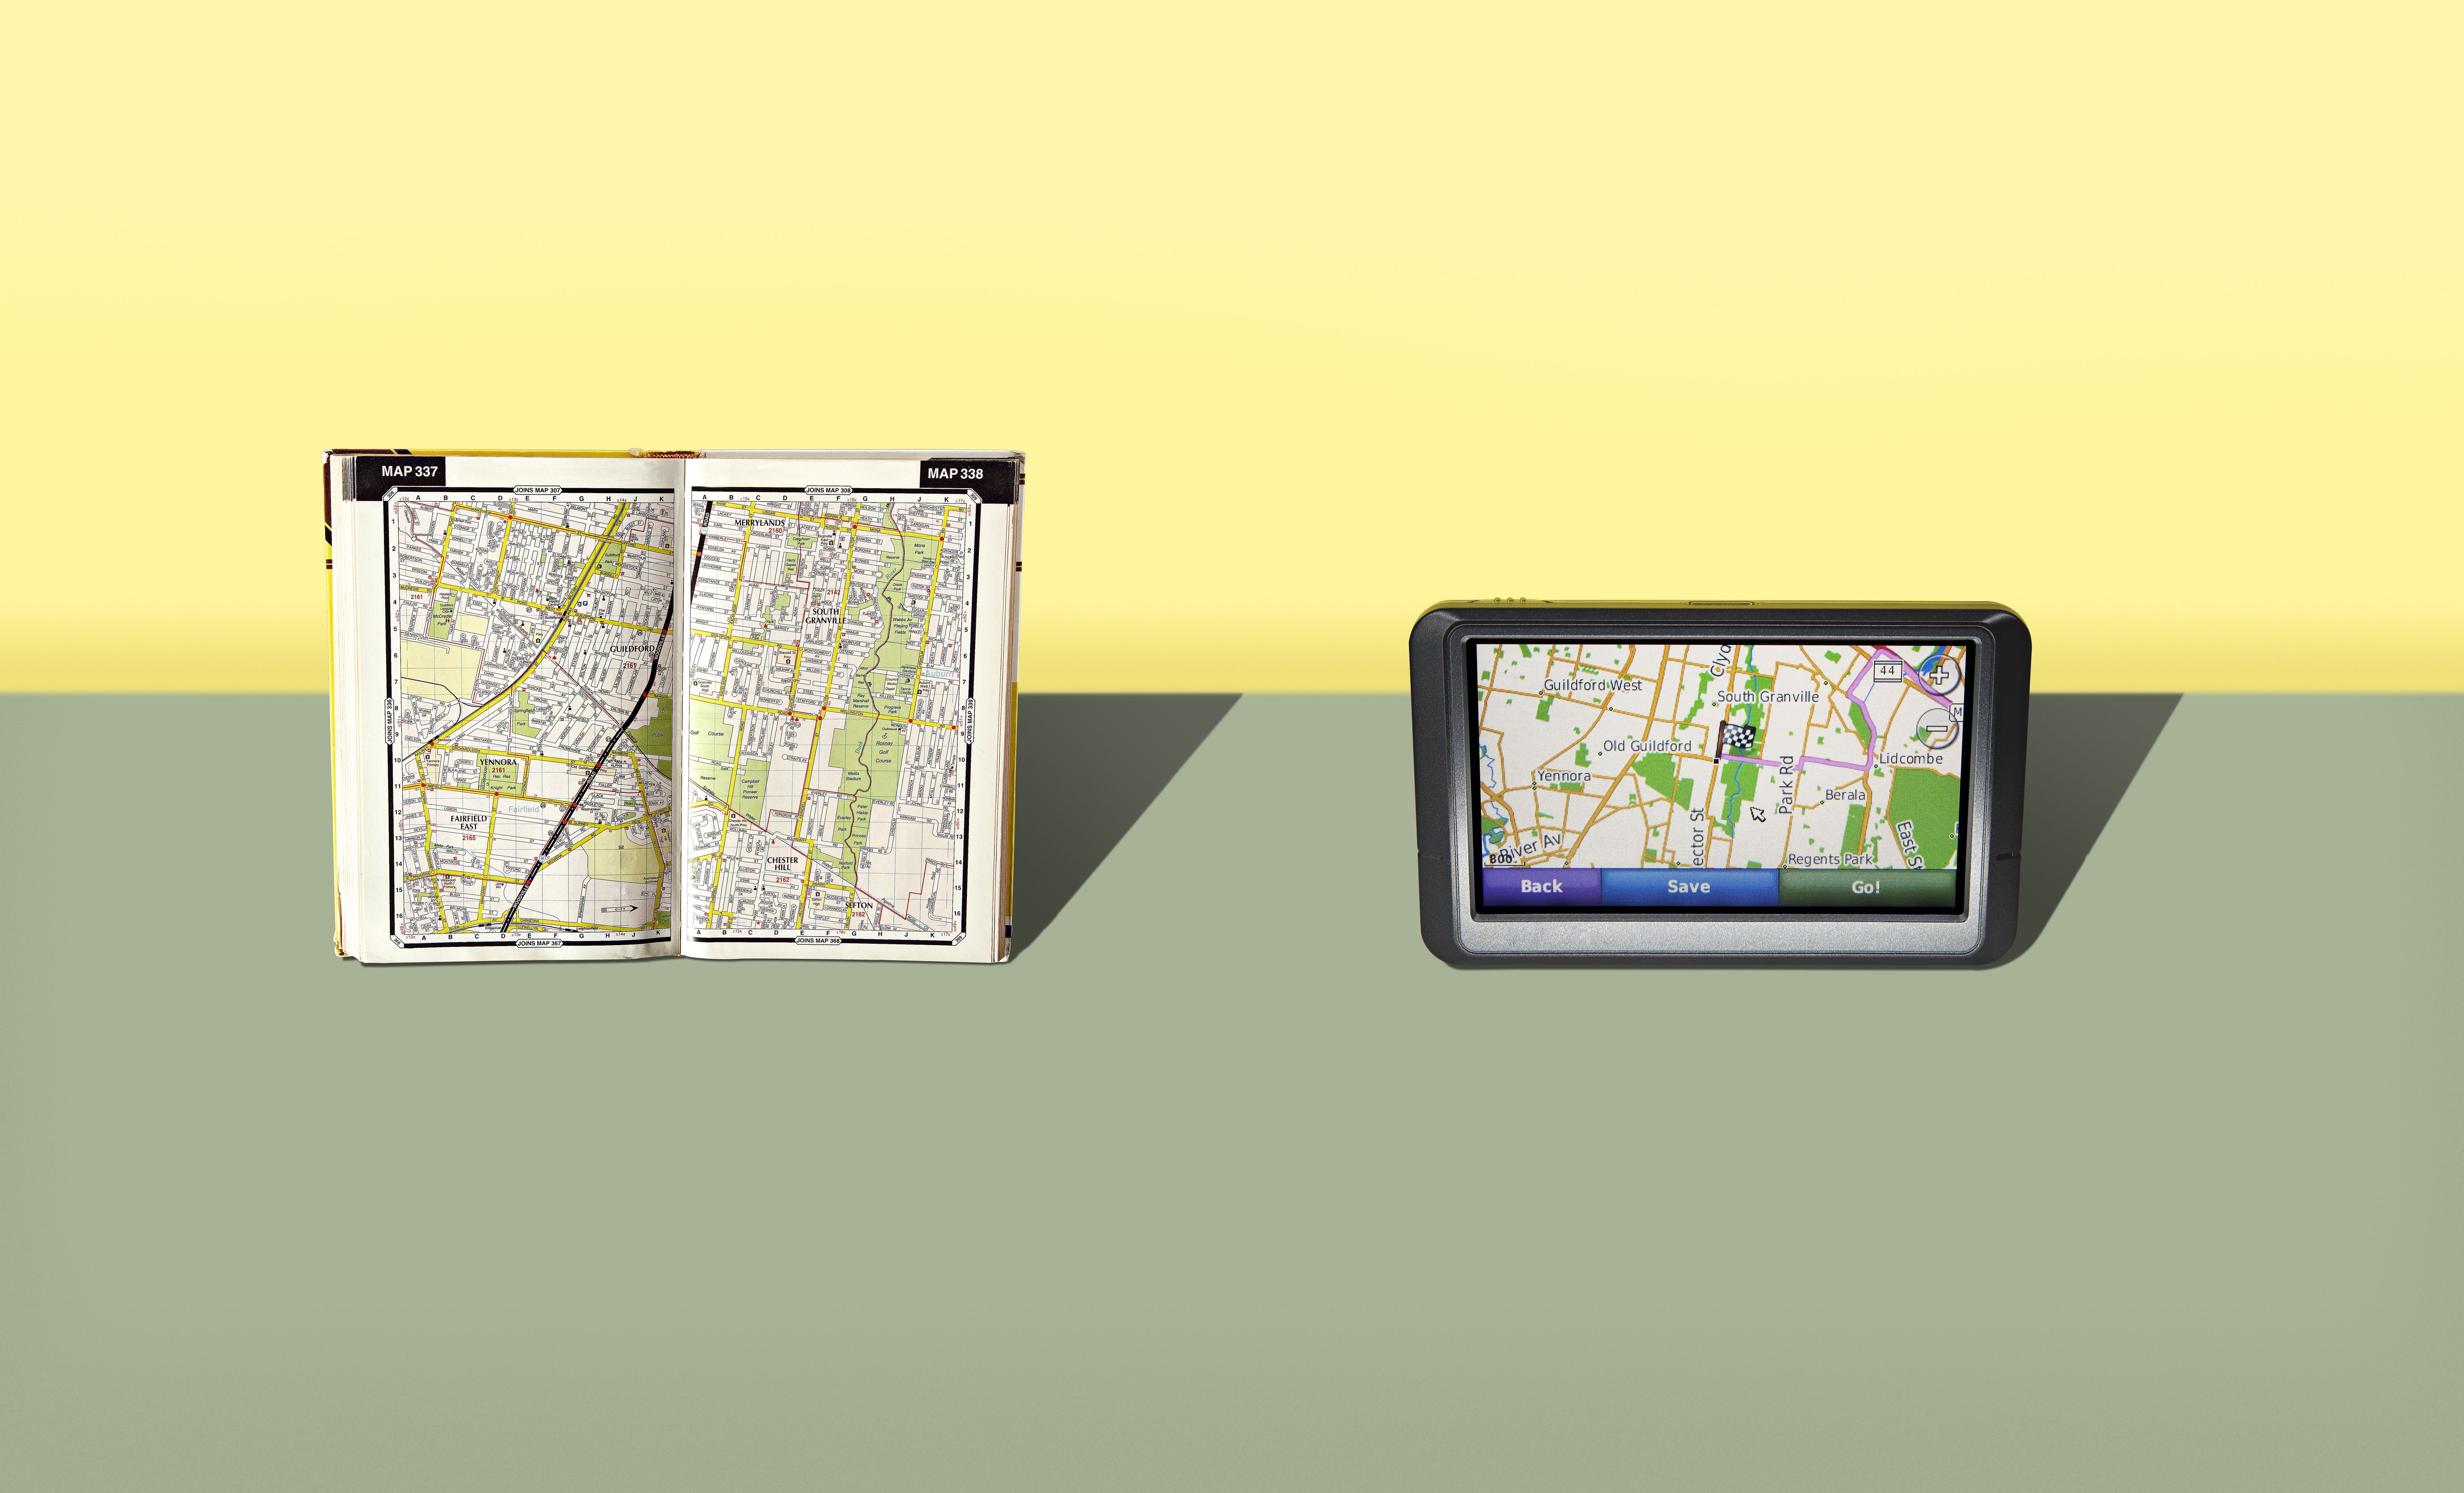 Bring a map or GPS on your trip so you don't get lost.